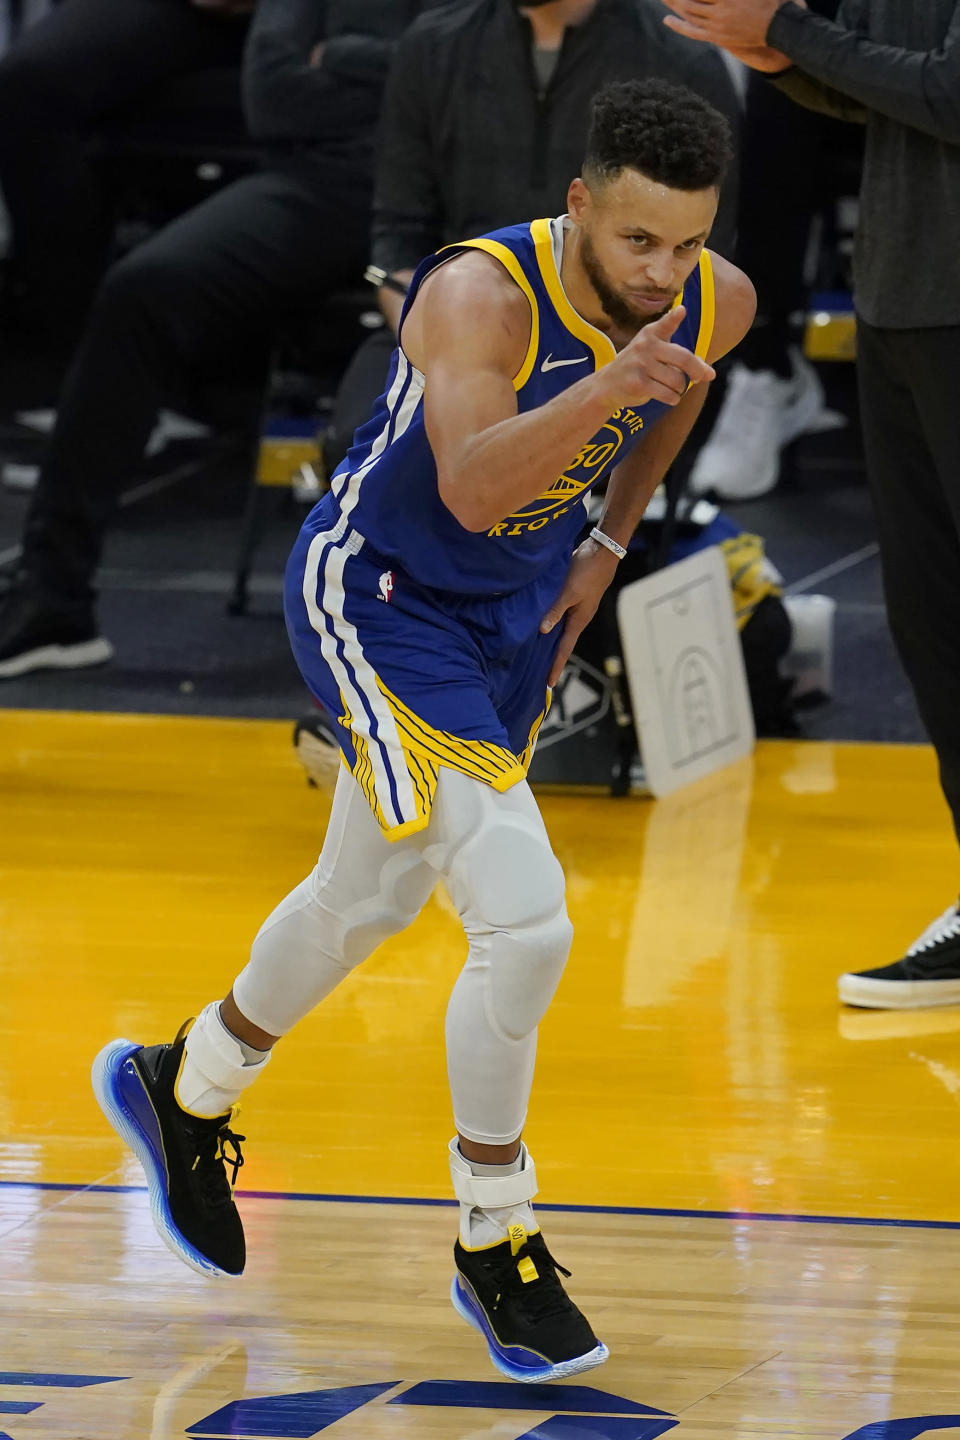 Golden State Warriors guard Stephen Curry reacts after scoring against the Cleveland Cavaliers during the second half of an NBA basketball game in San Francisco, Monday, Feb. 15, 2021. (AP Photo/Jeff Chiu)